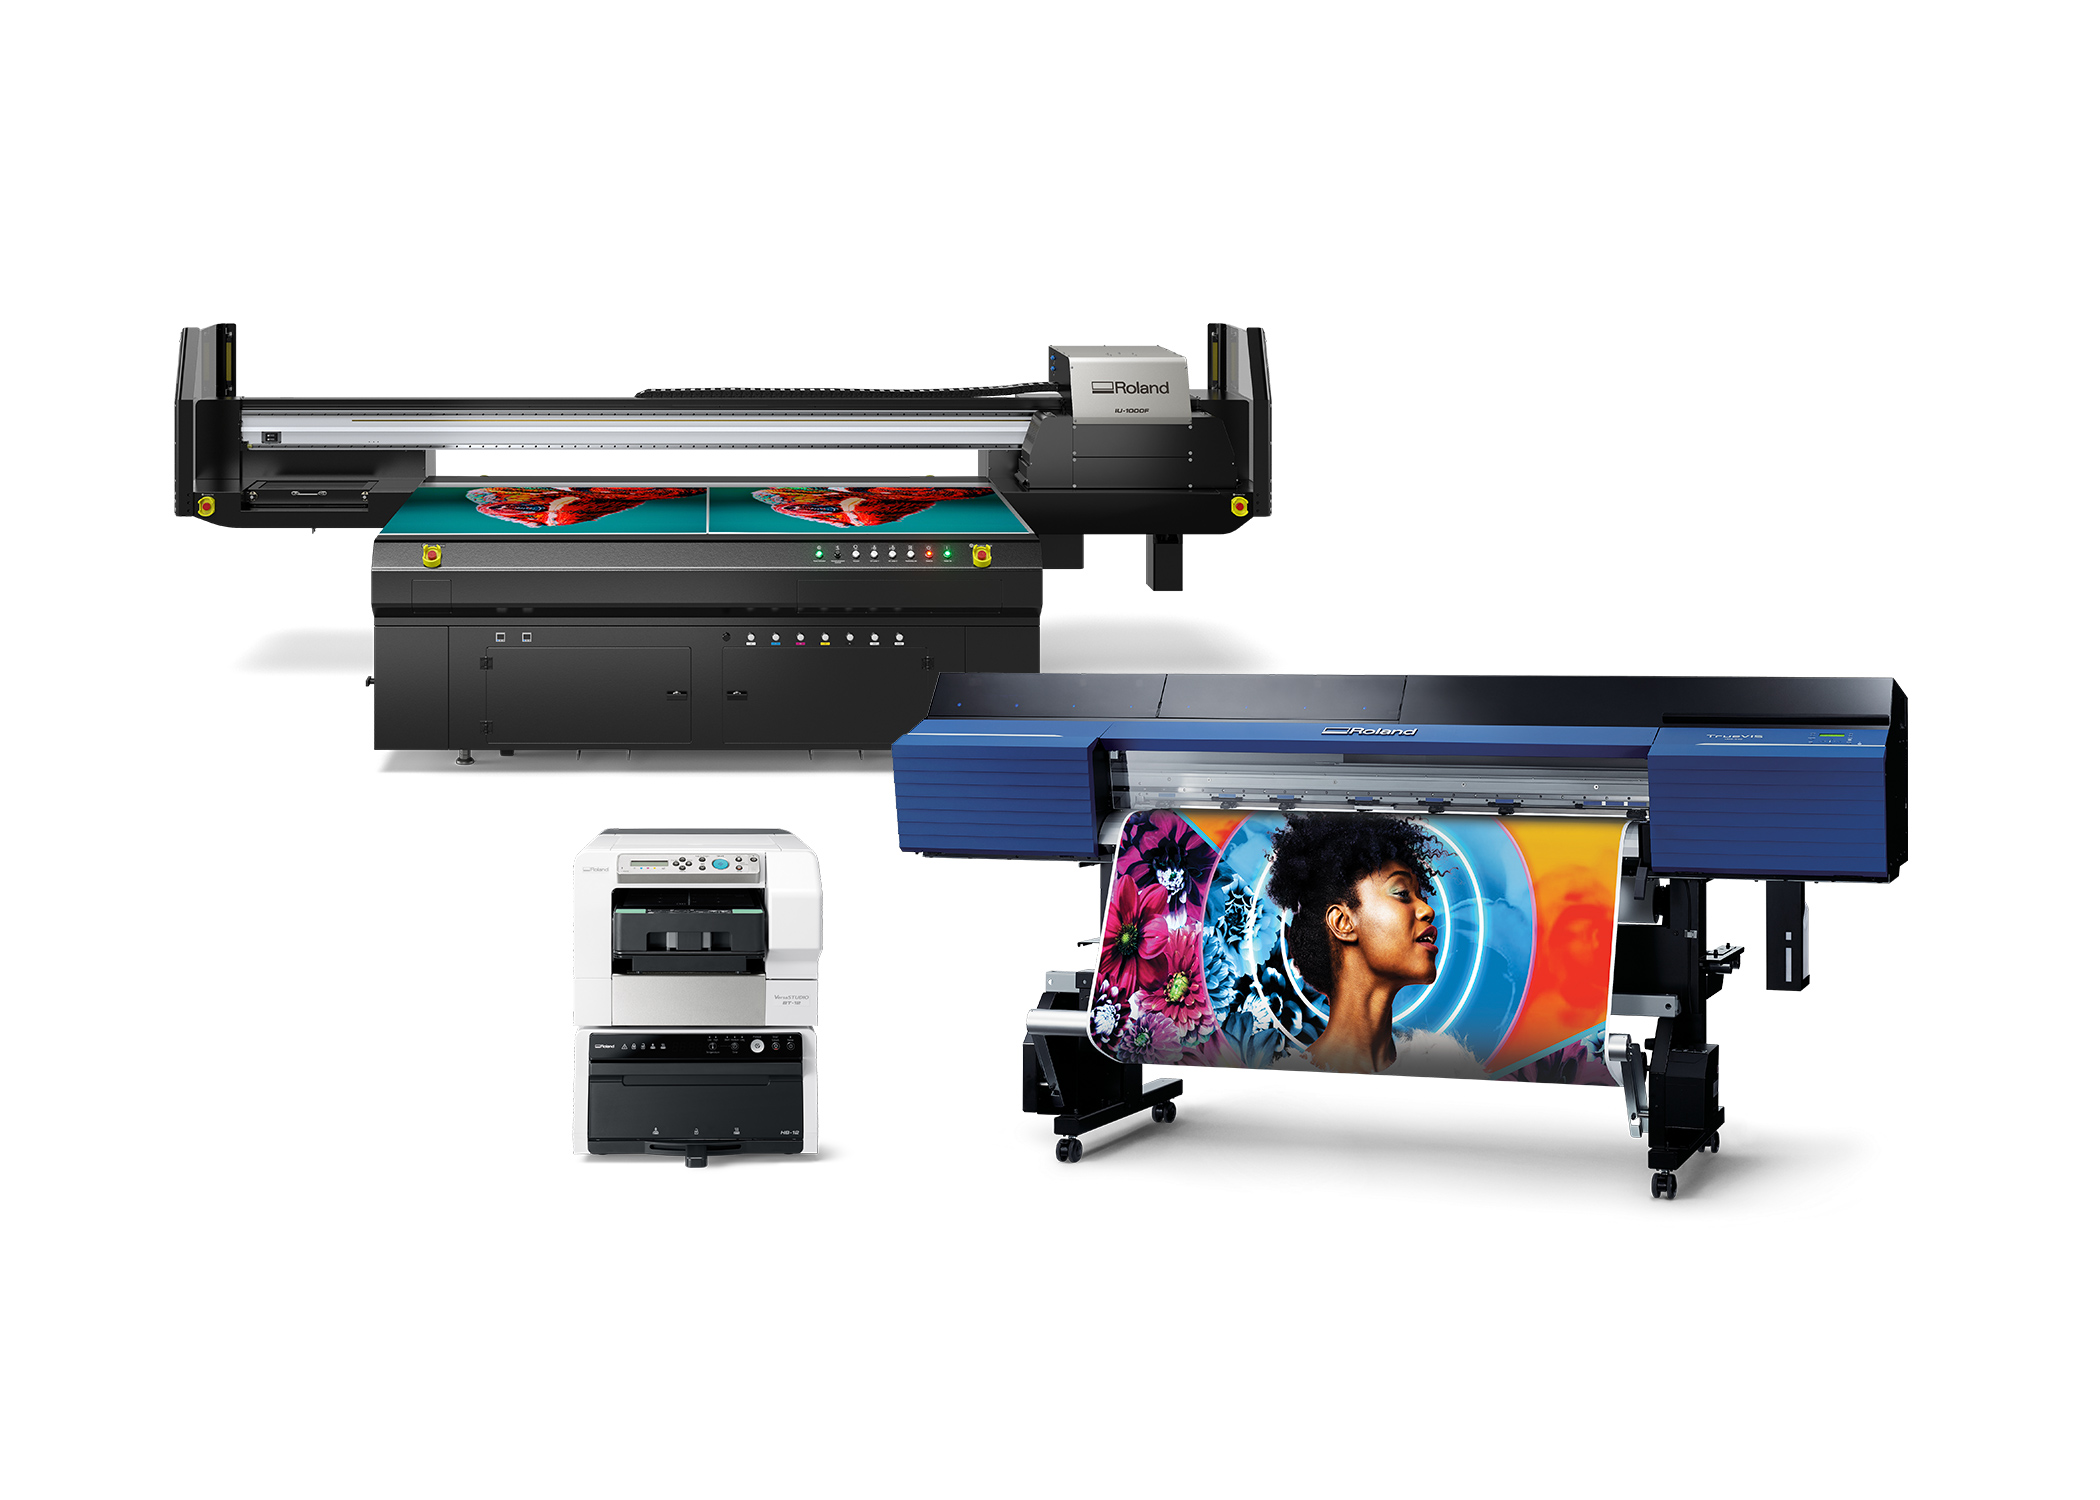 Roland DGA will be showcasing its advanced devices for eco-solvent, UV, and direct-to-garment printing at the upcoming PRINTING United Digital Experience.